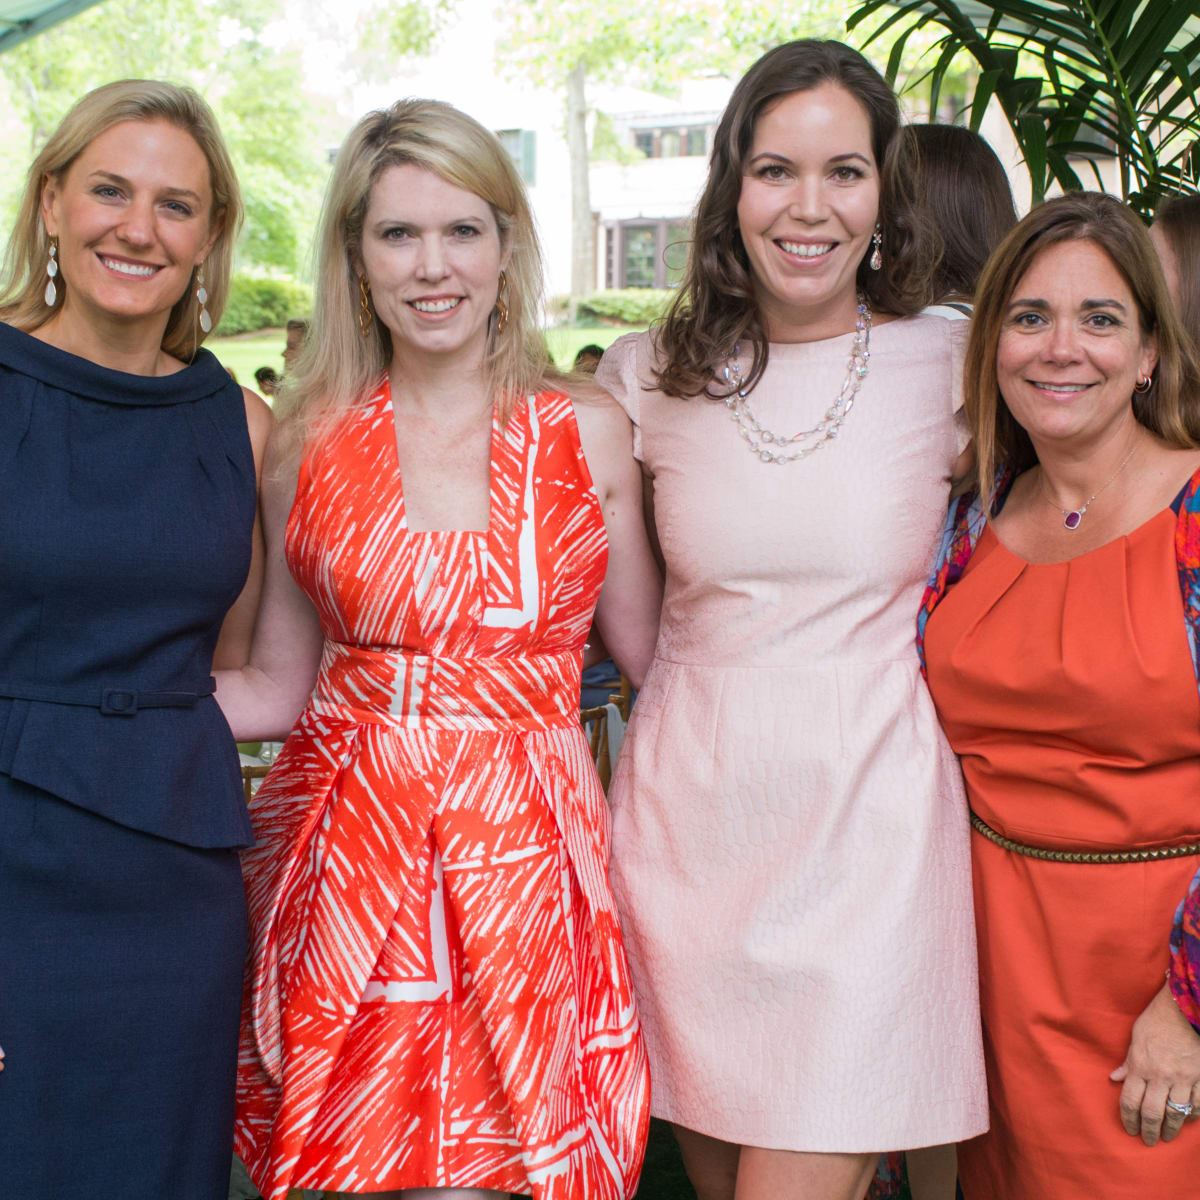 Bayou Bend luncheon, April 2016, christie McCartney, Courtney toomey, Emily Adams, Carmen Mach